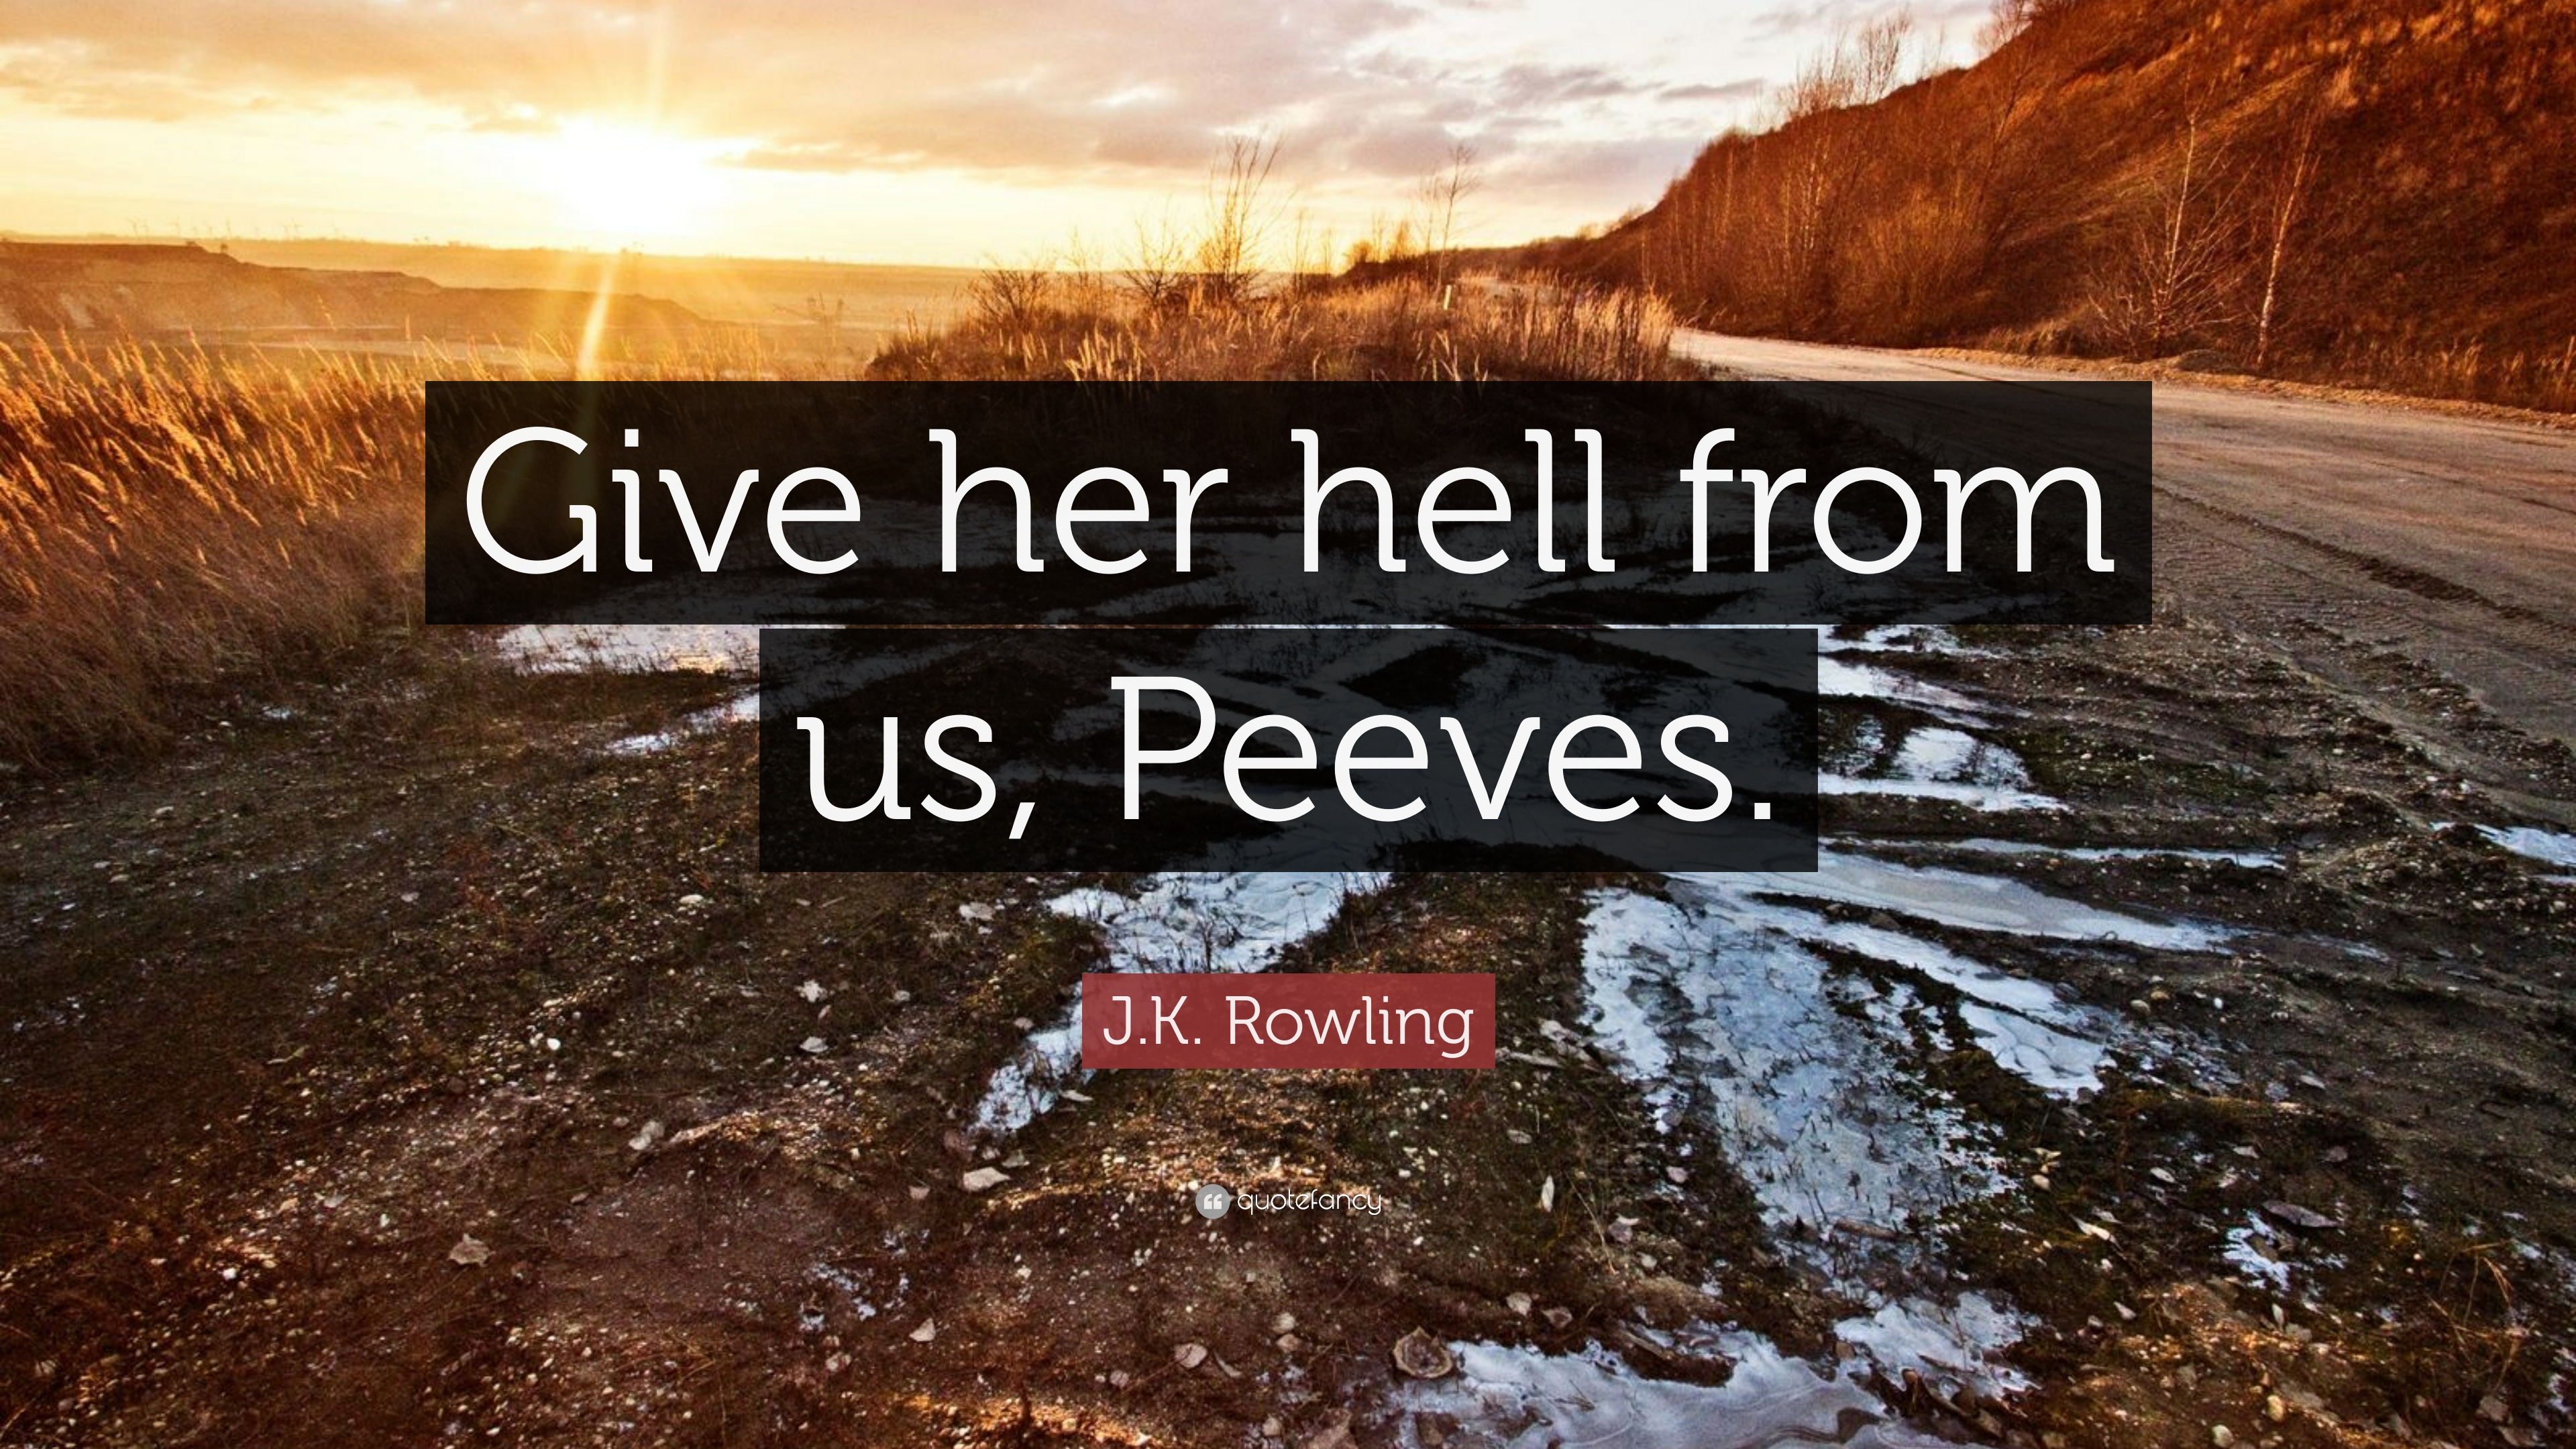 j k rowling quote u201cgive her hell from us peeves u201d 10